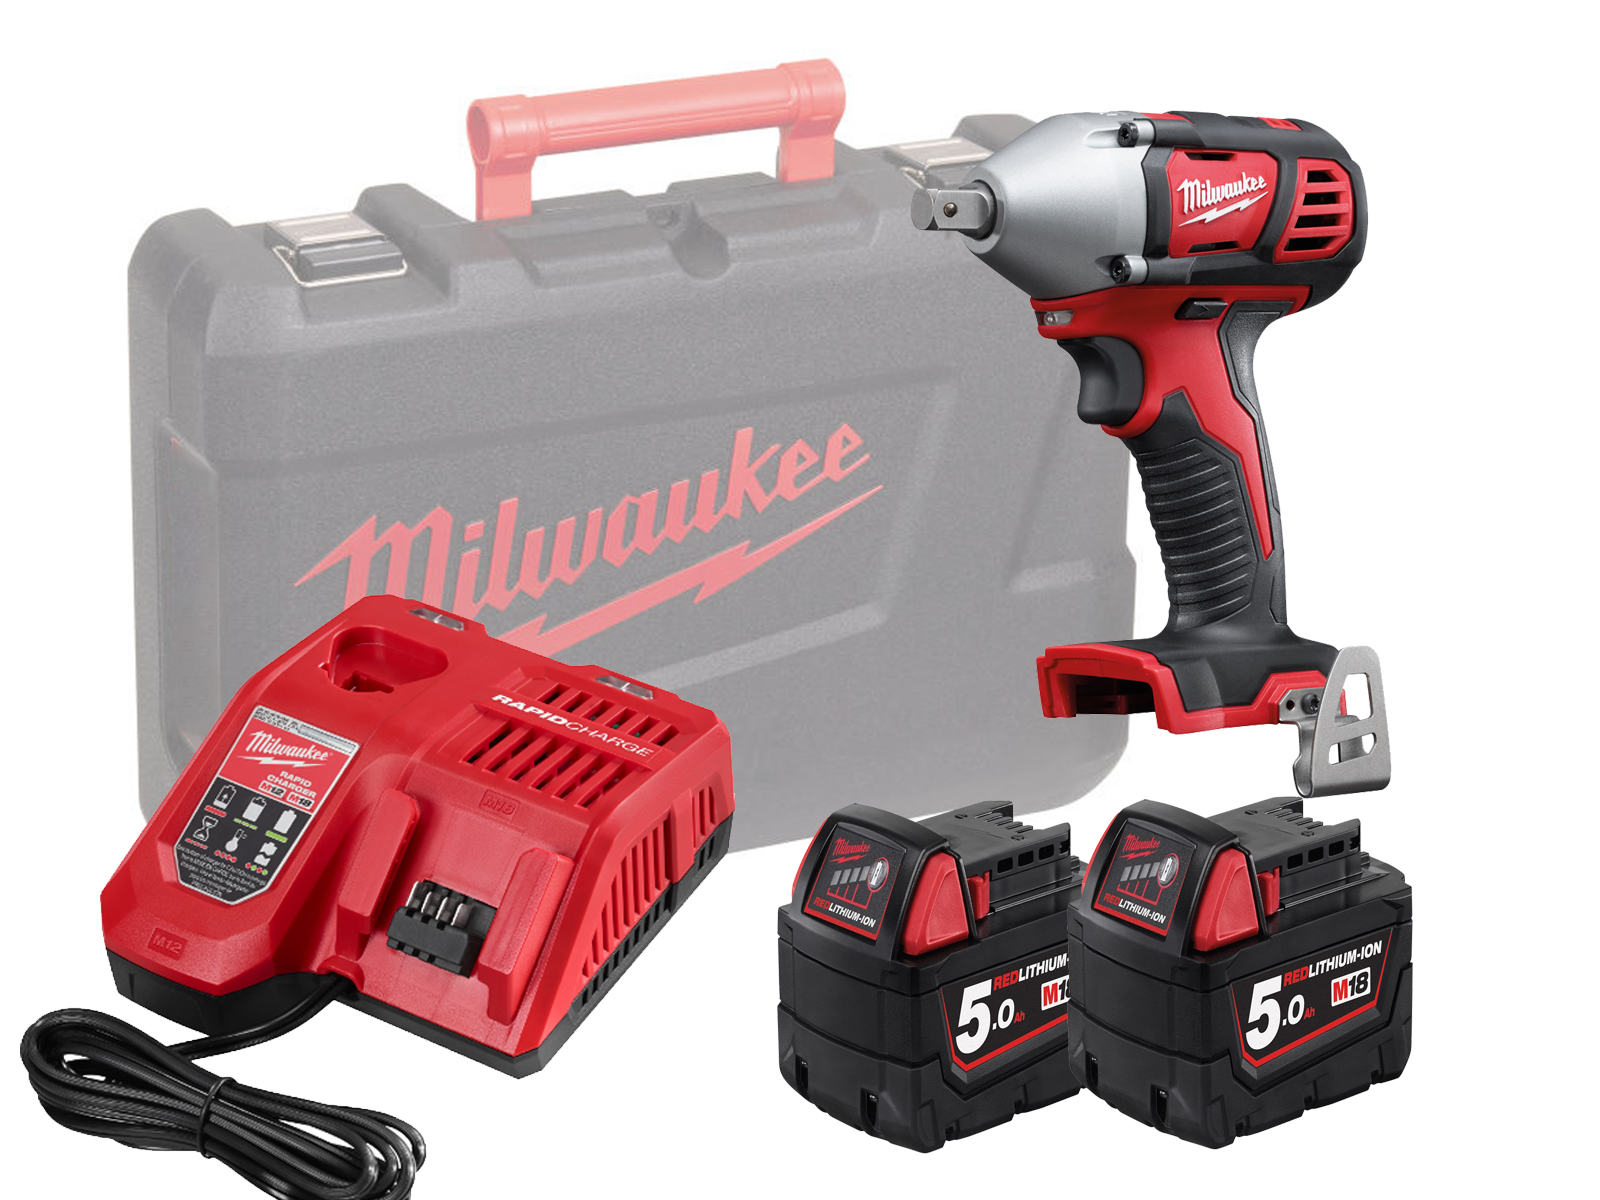 MILWAUKEE 18V BRUSHED IMPACT WRENCH 1/2